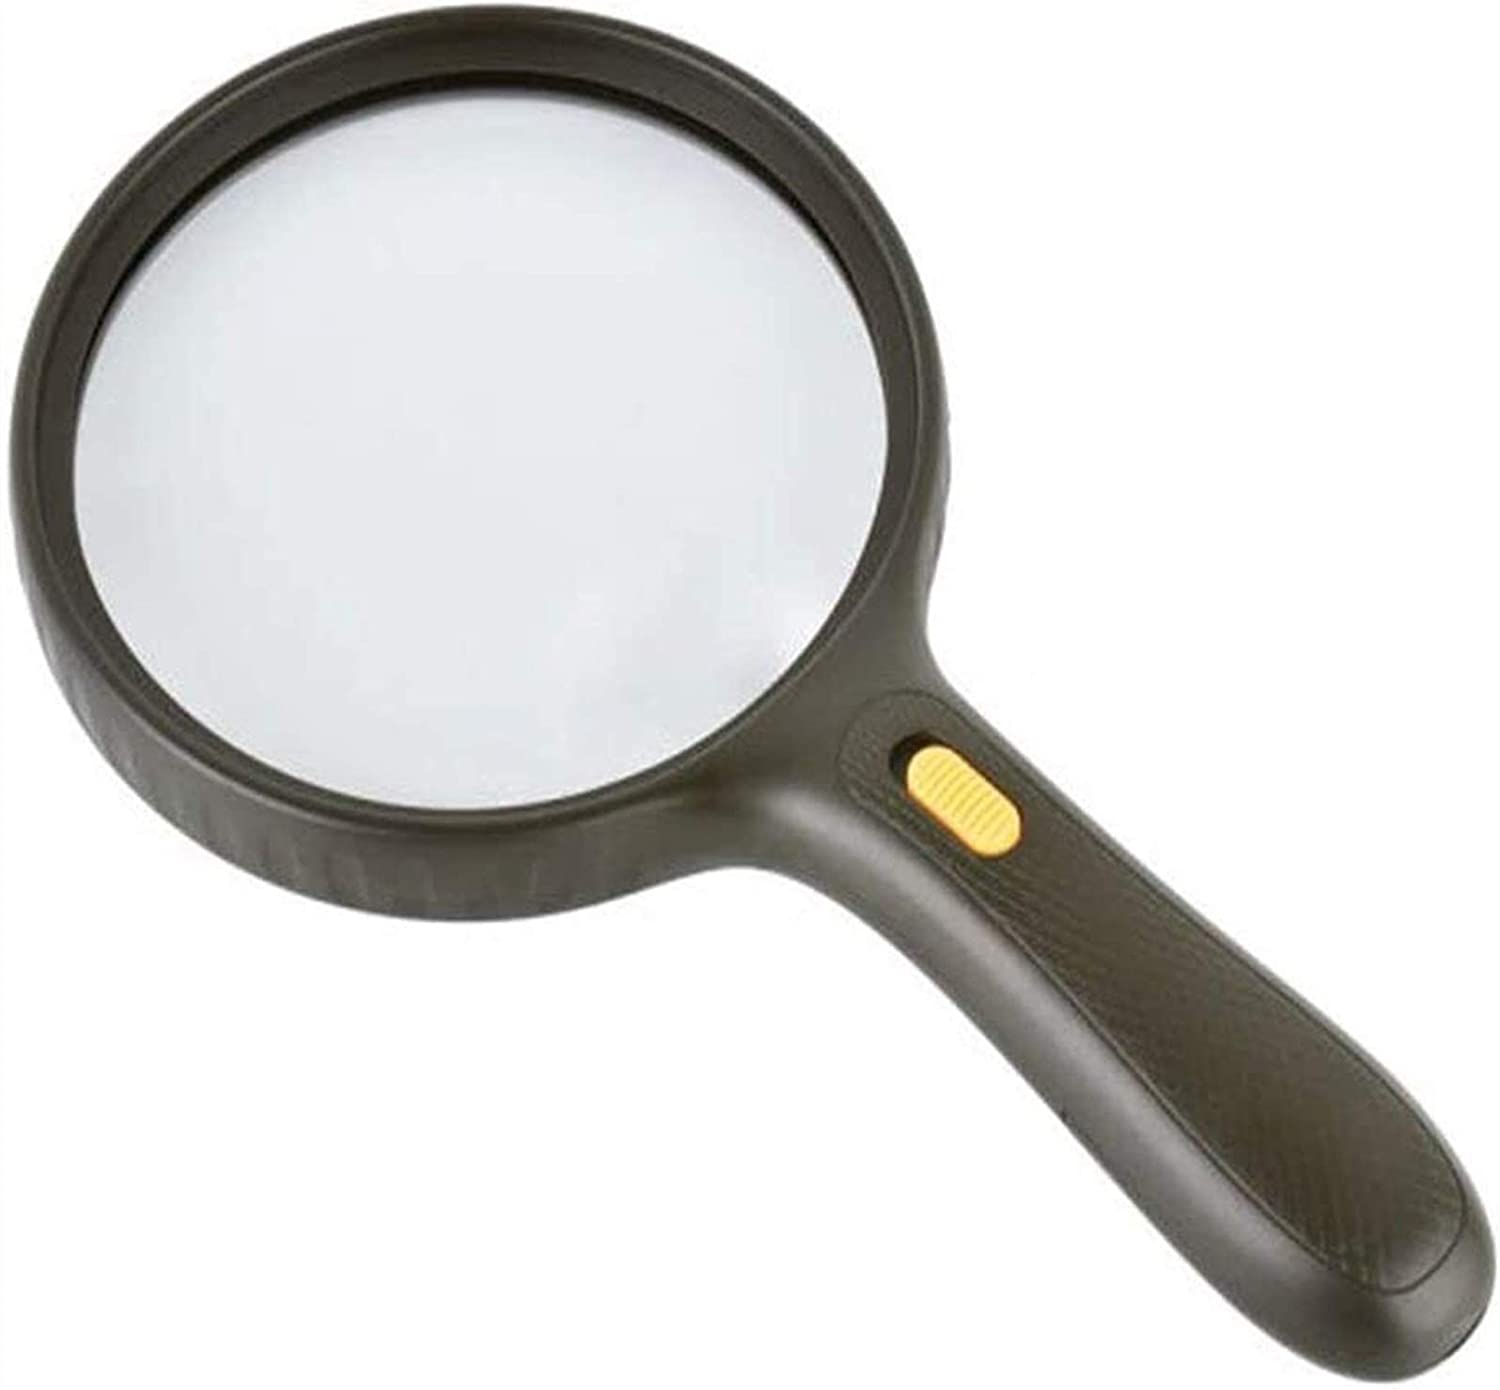 Ranking TOP11 CMMWA Max 65% OFF Portable Reading Magnifier Hand-held 138M Lens Extra-Large